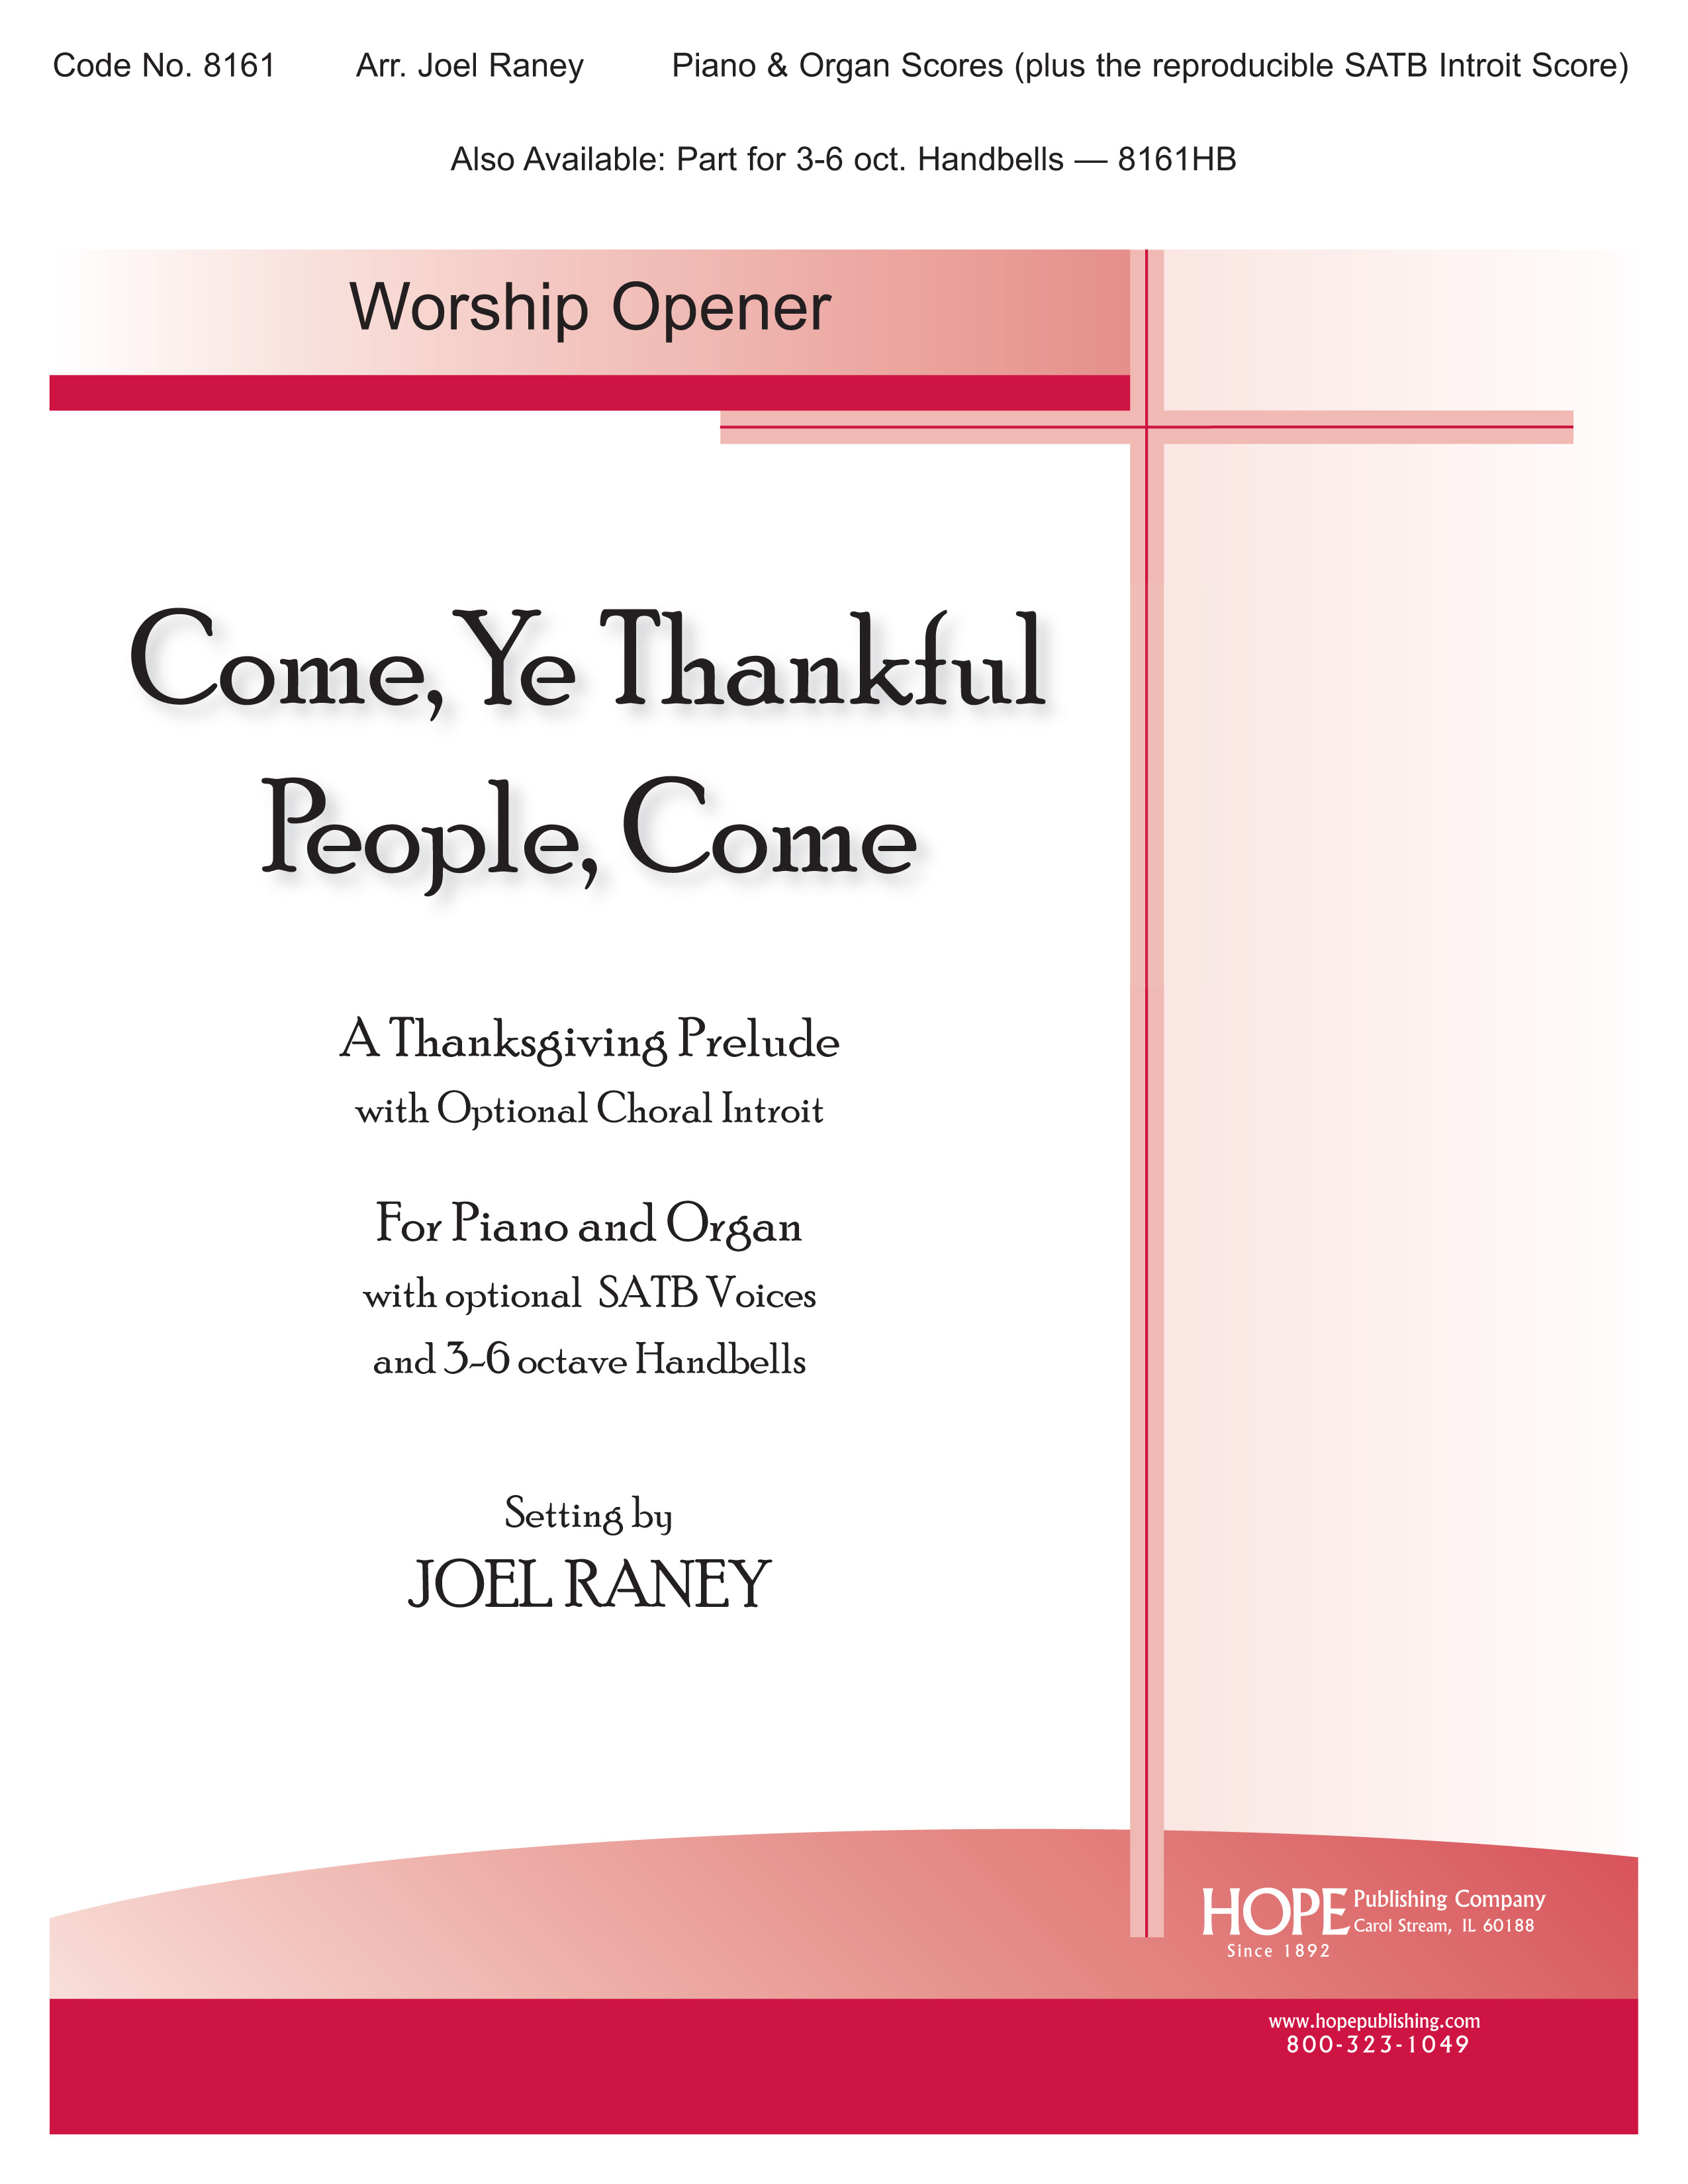 Come Ye Thankful People Come - Organ-Piano Duet Cover Image